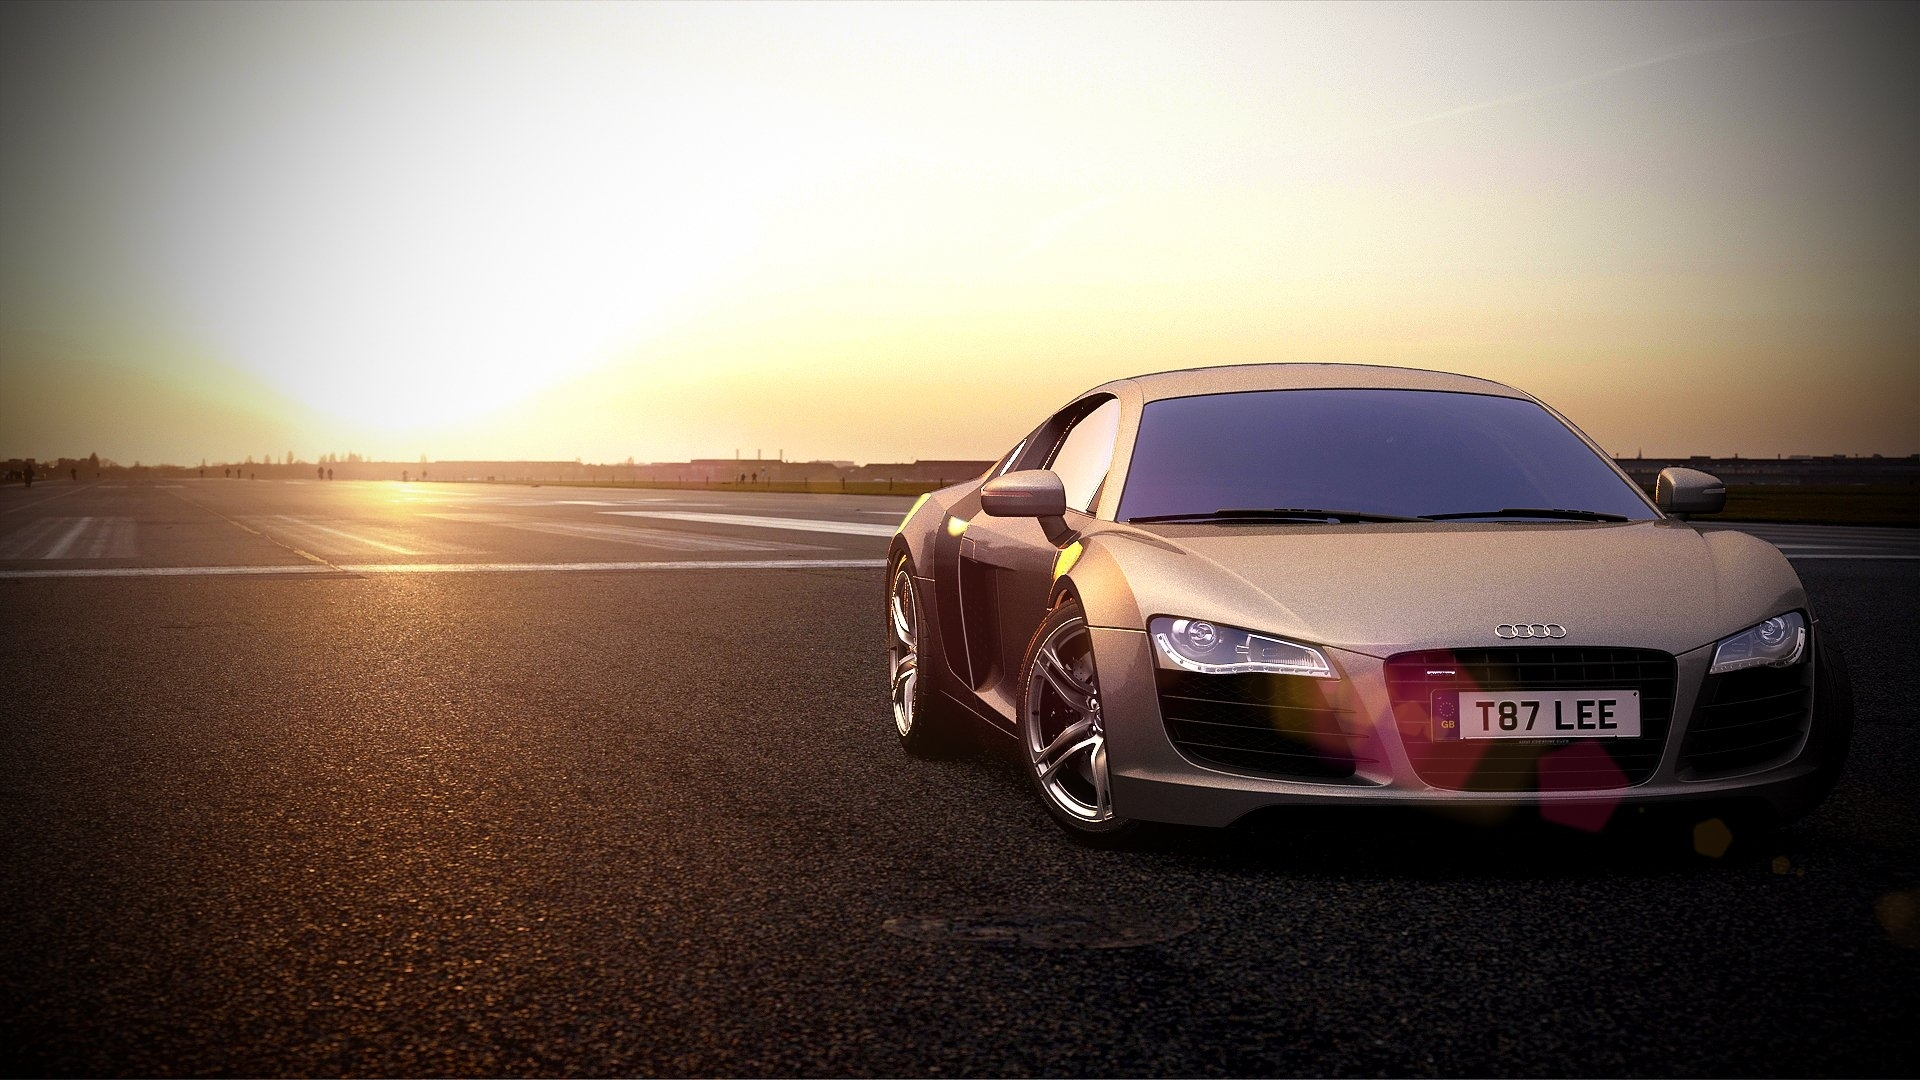 247 audi r8 hd wallpapers | background images - wallpaper abyss